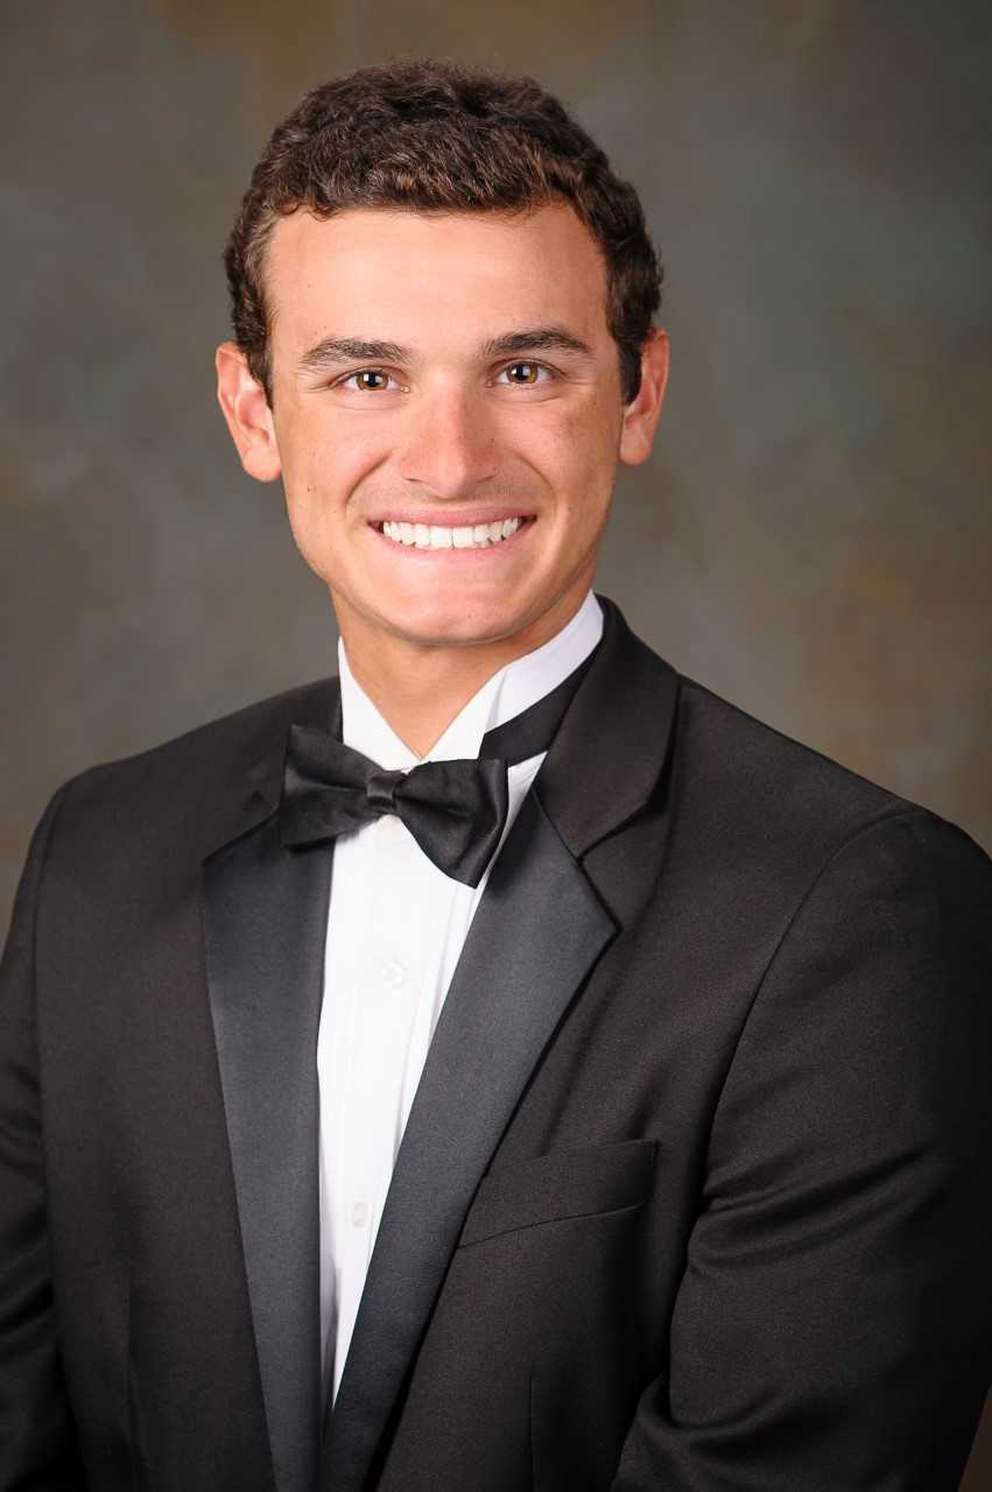 Andrew Salvatore Piazza is the 2018 salutatorian at Clearwater Central Catholic High School.